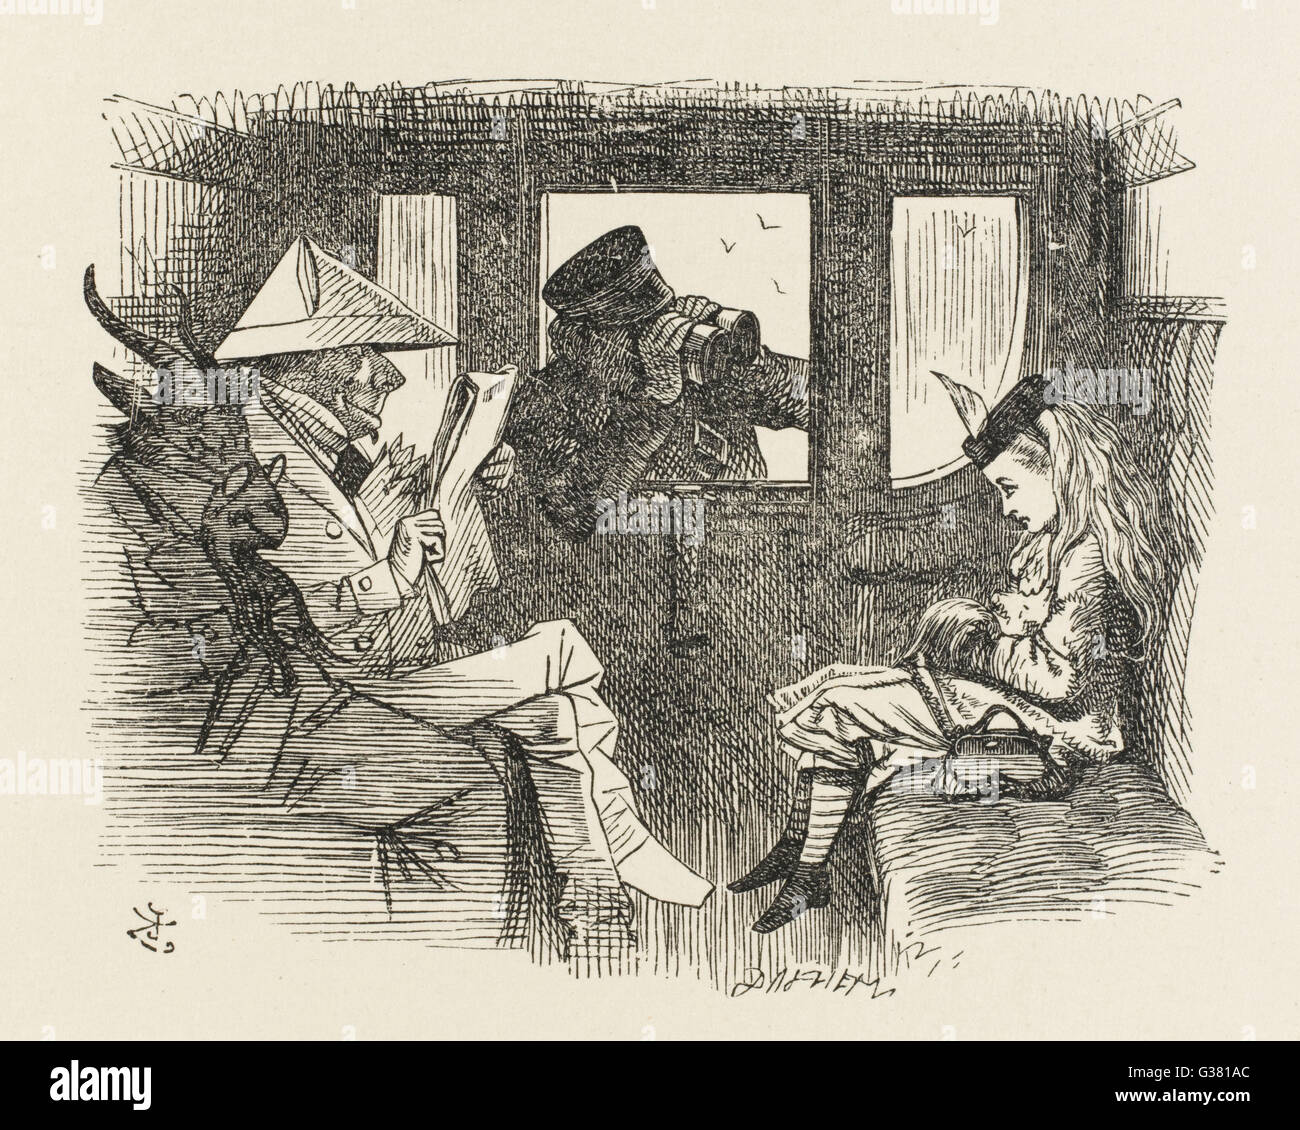 Alice in the railway carriage, closely observed by the guard        Date: First pblished: 1872 - Stock Image